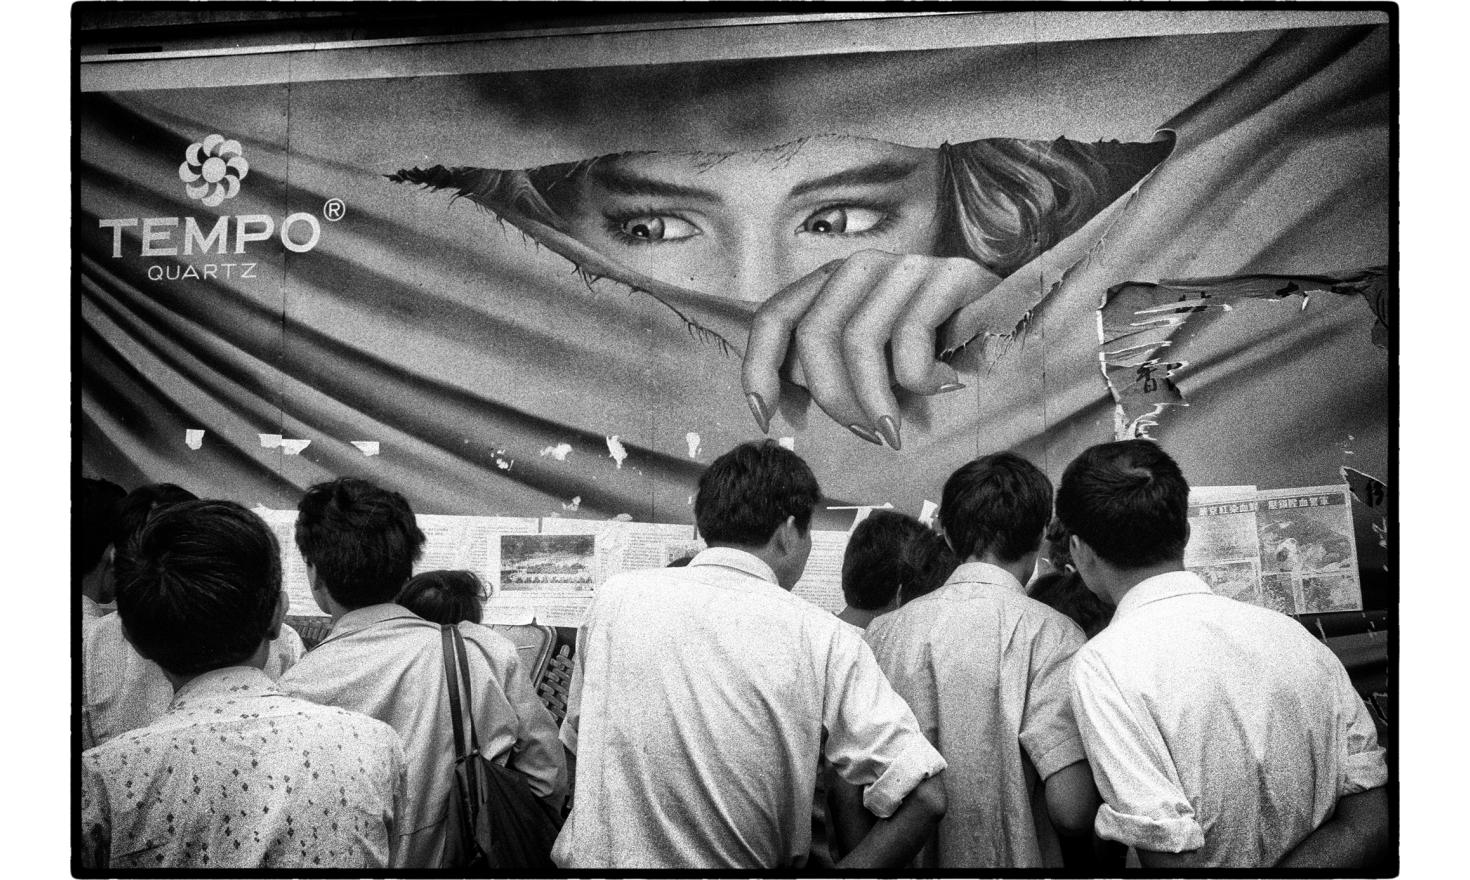 Dazibaos in the streets of Shangaï, China. Demonstrations went on for a few days after the Beijing crackdown. China, June 1989.